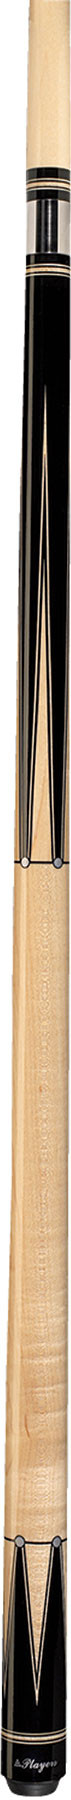 Players G-2232 Brown Pool Cue Stick